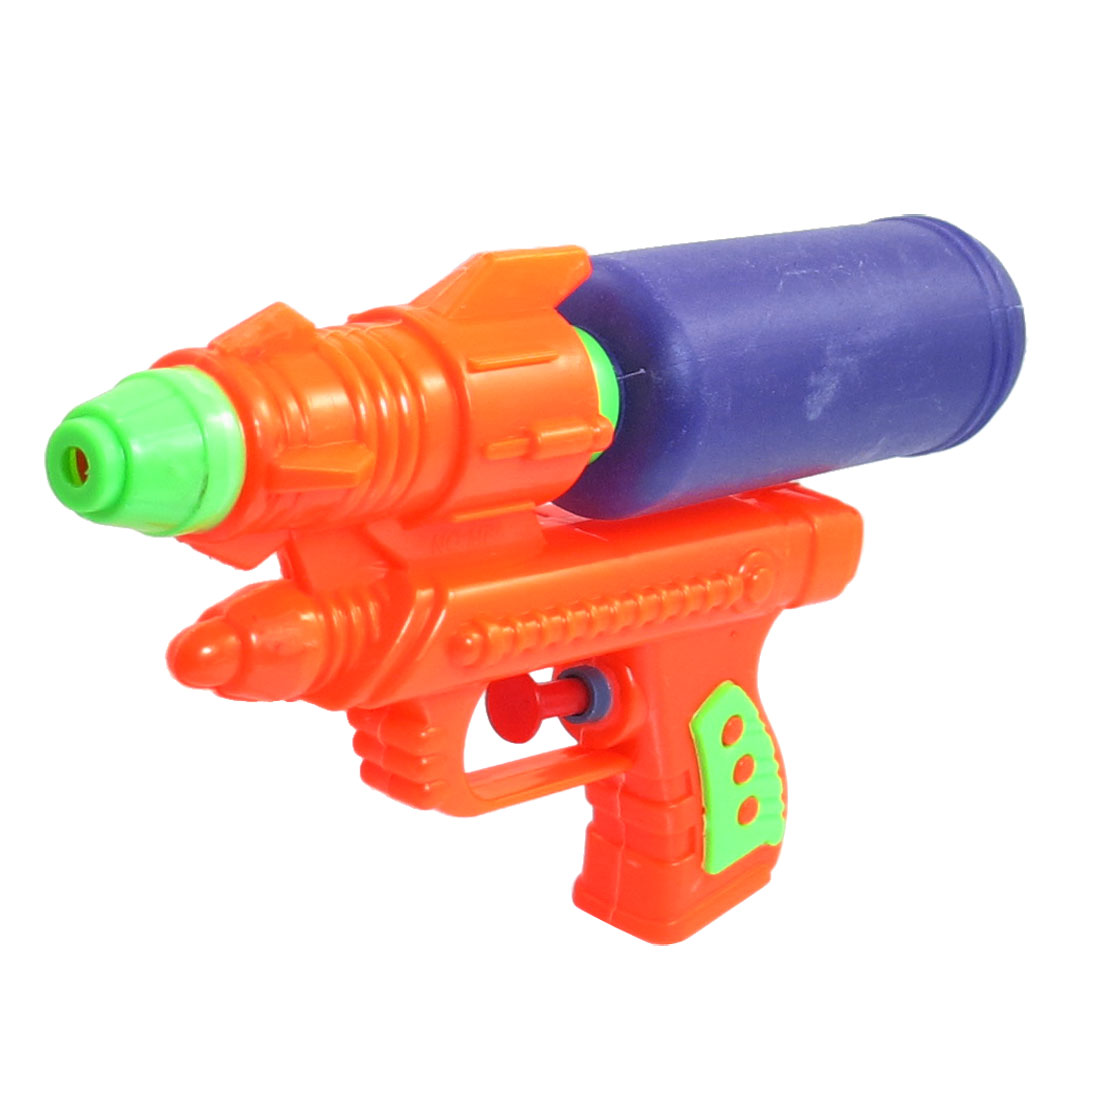 Kids Children Fuchsia Purple Fun Water Warfare Toy Plastic Squirt Gun